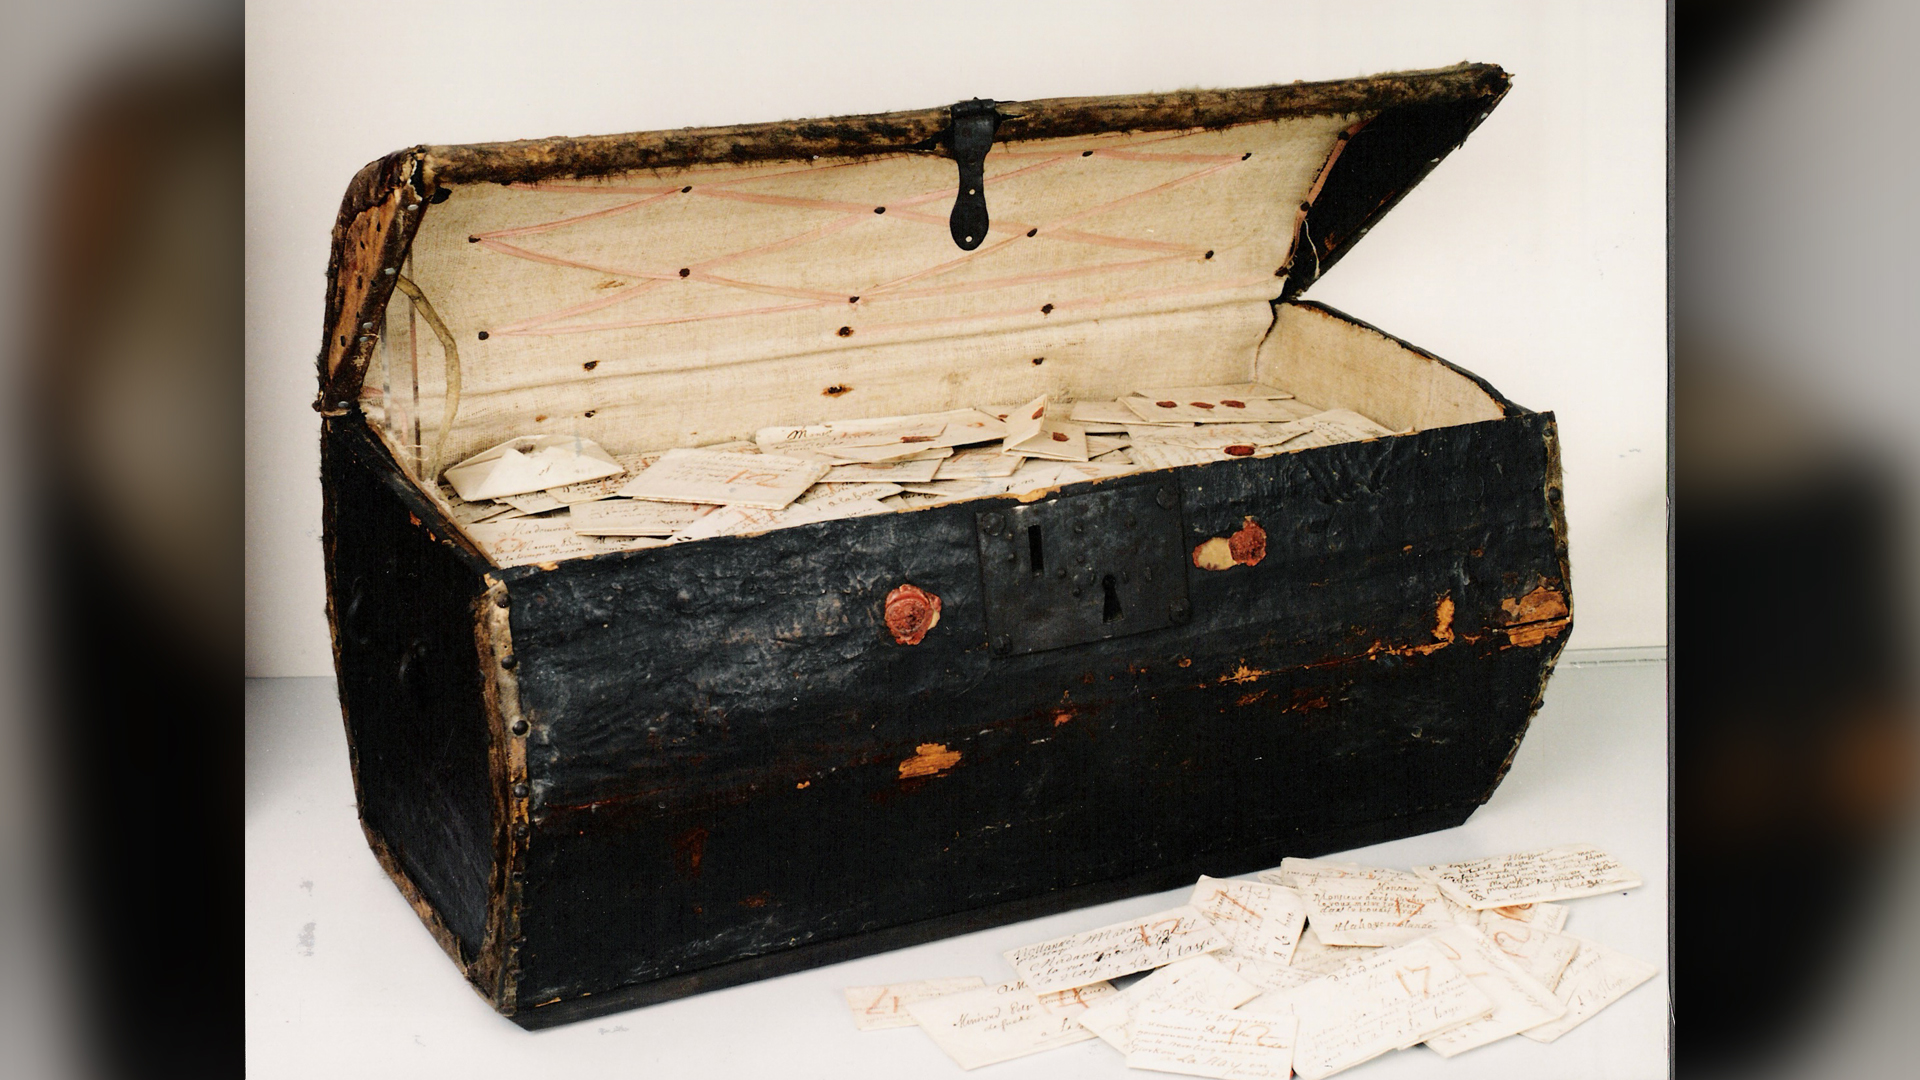 A seventeenth-century trunk that was bequeathed to the Dutch postal museum in the Hague contained thousands of letters that were sent from all over Europe and were never delivered.